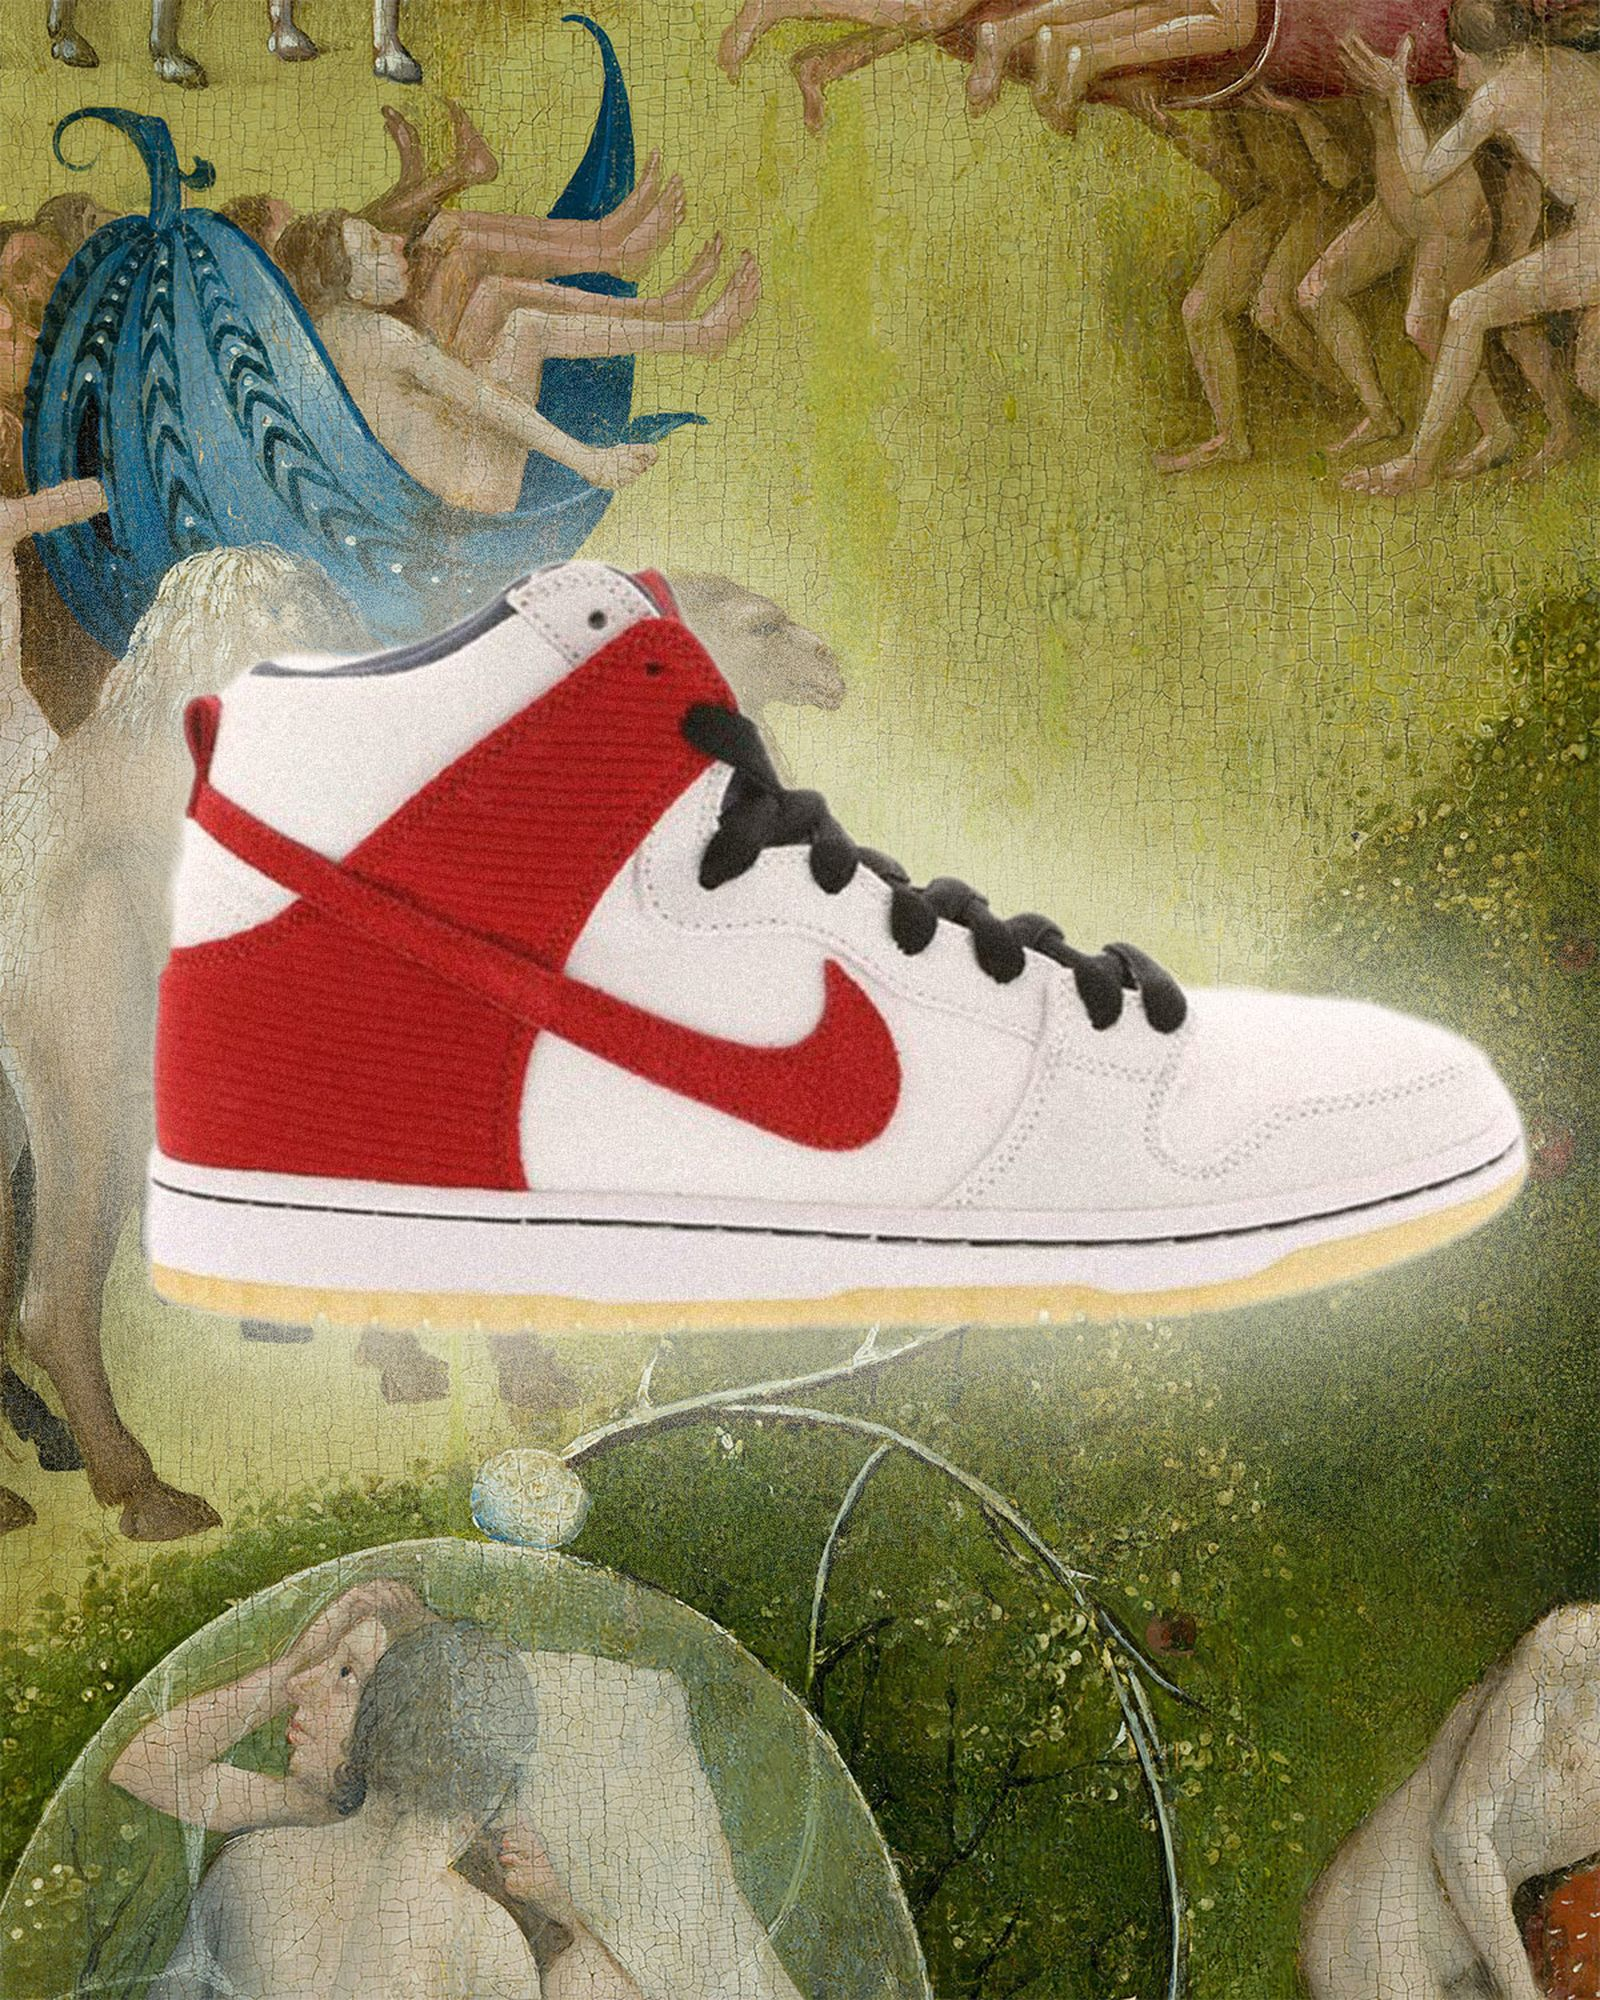 Nike-SB-Dunk-High-Cheech-And-Chong-420